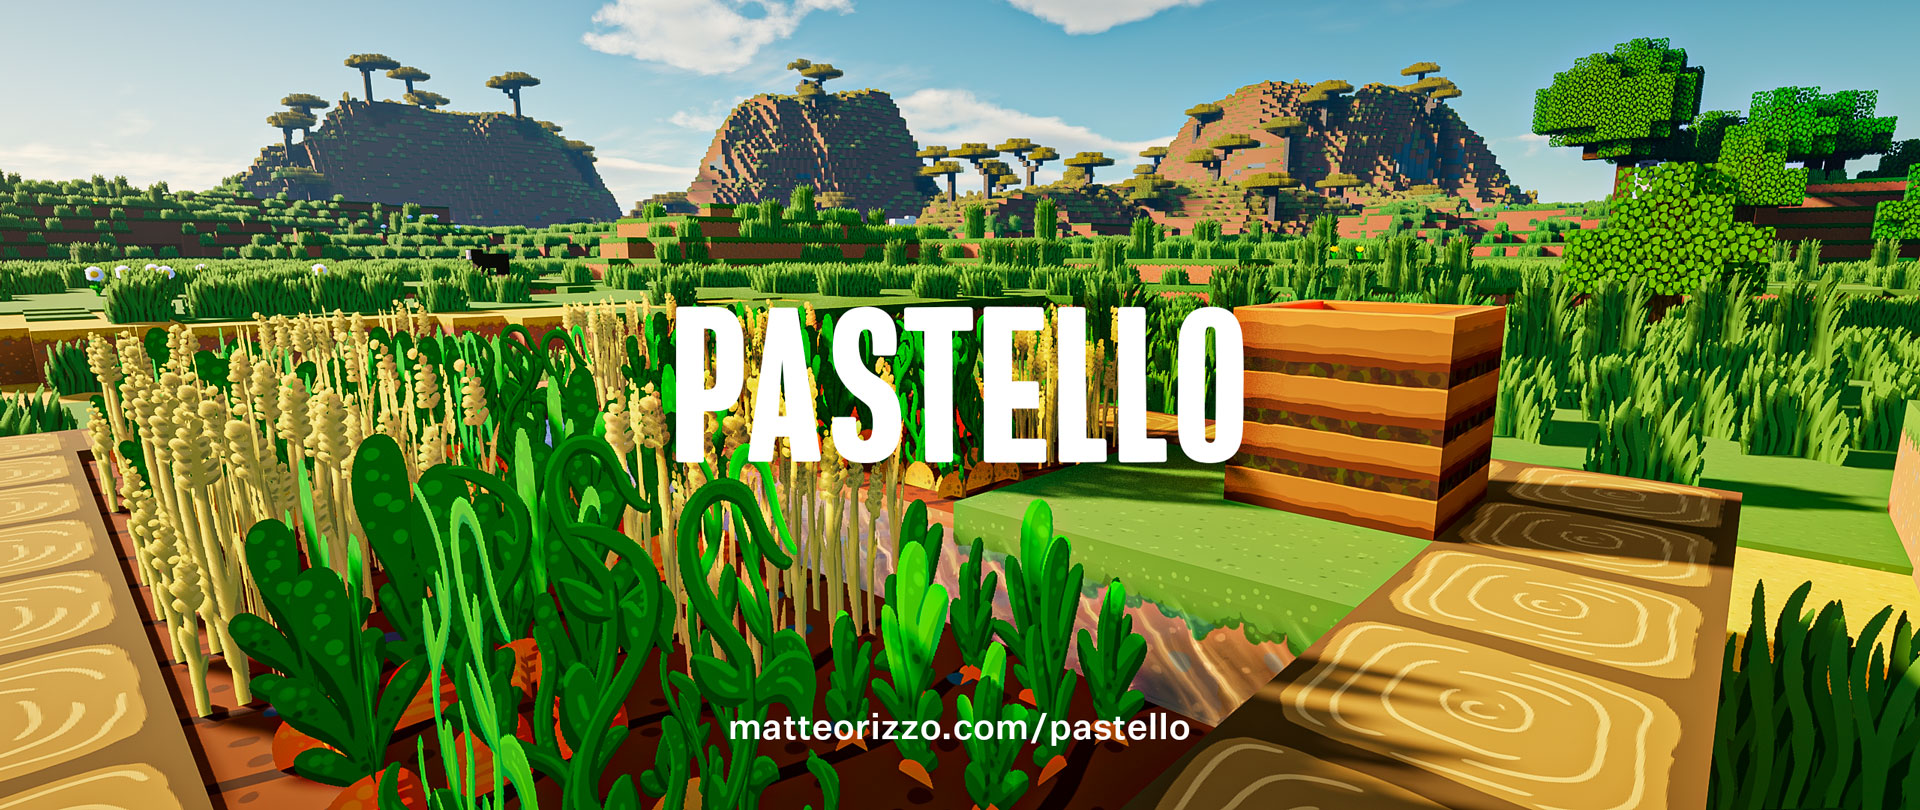 Pastello Texture Pack With Seus Ptgi And Labpbr Support Top 10 On R Minecraft Resource Packs Mapping And Modding Java Edition Minecraft Forum Minecraft Forum